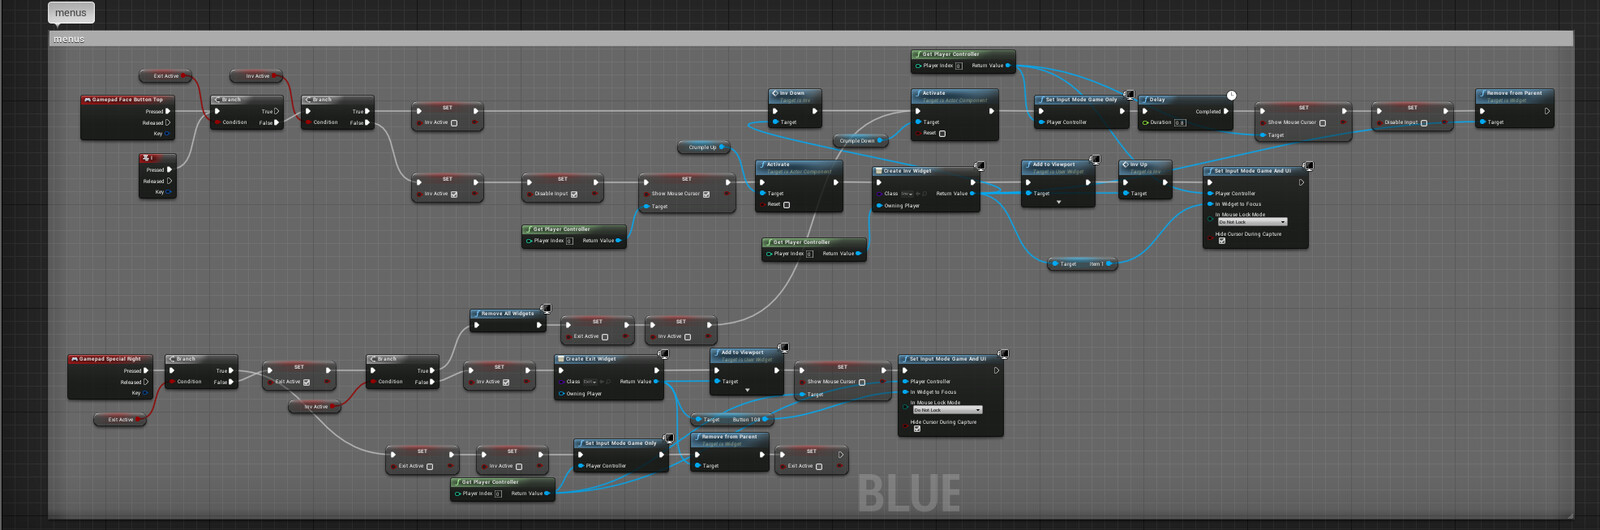 Part of the 2Dsidecroller Character Inventory blueprint. Sets widget focus with gamepad and character state when menus are opened.